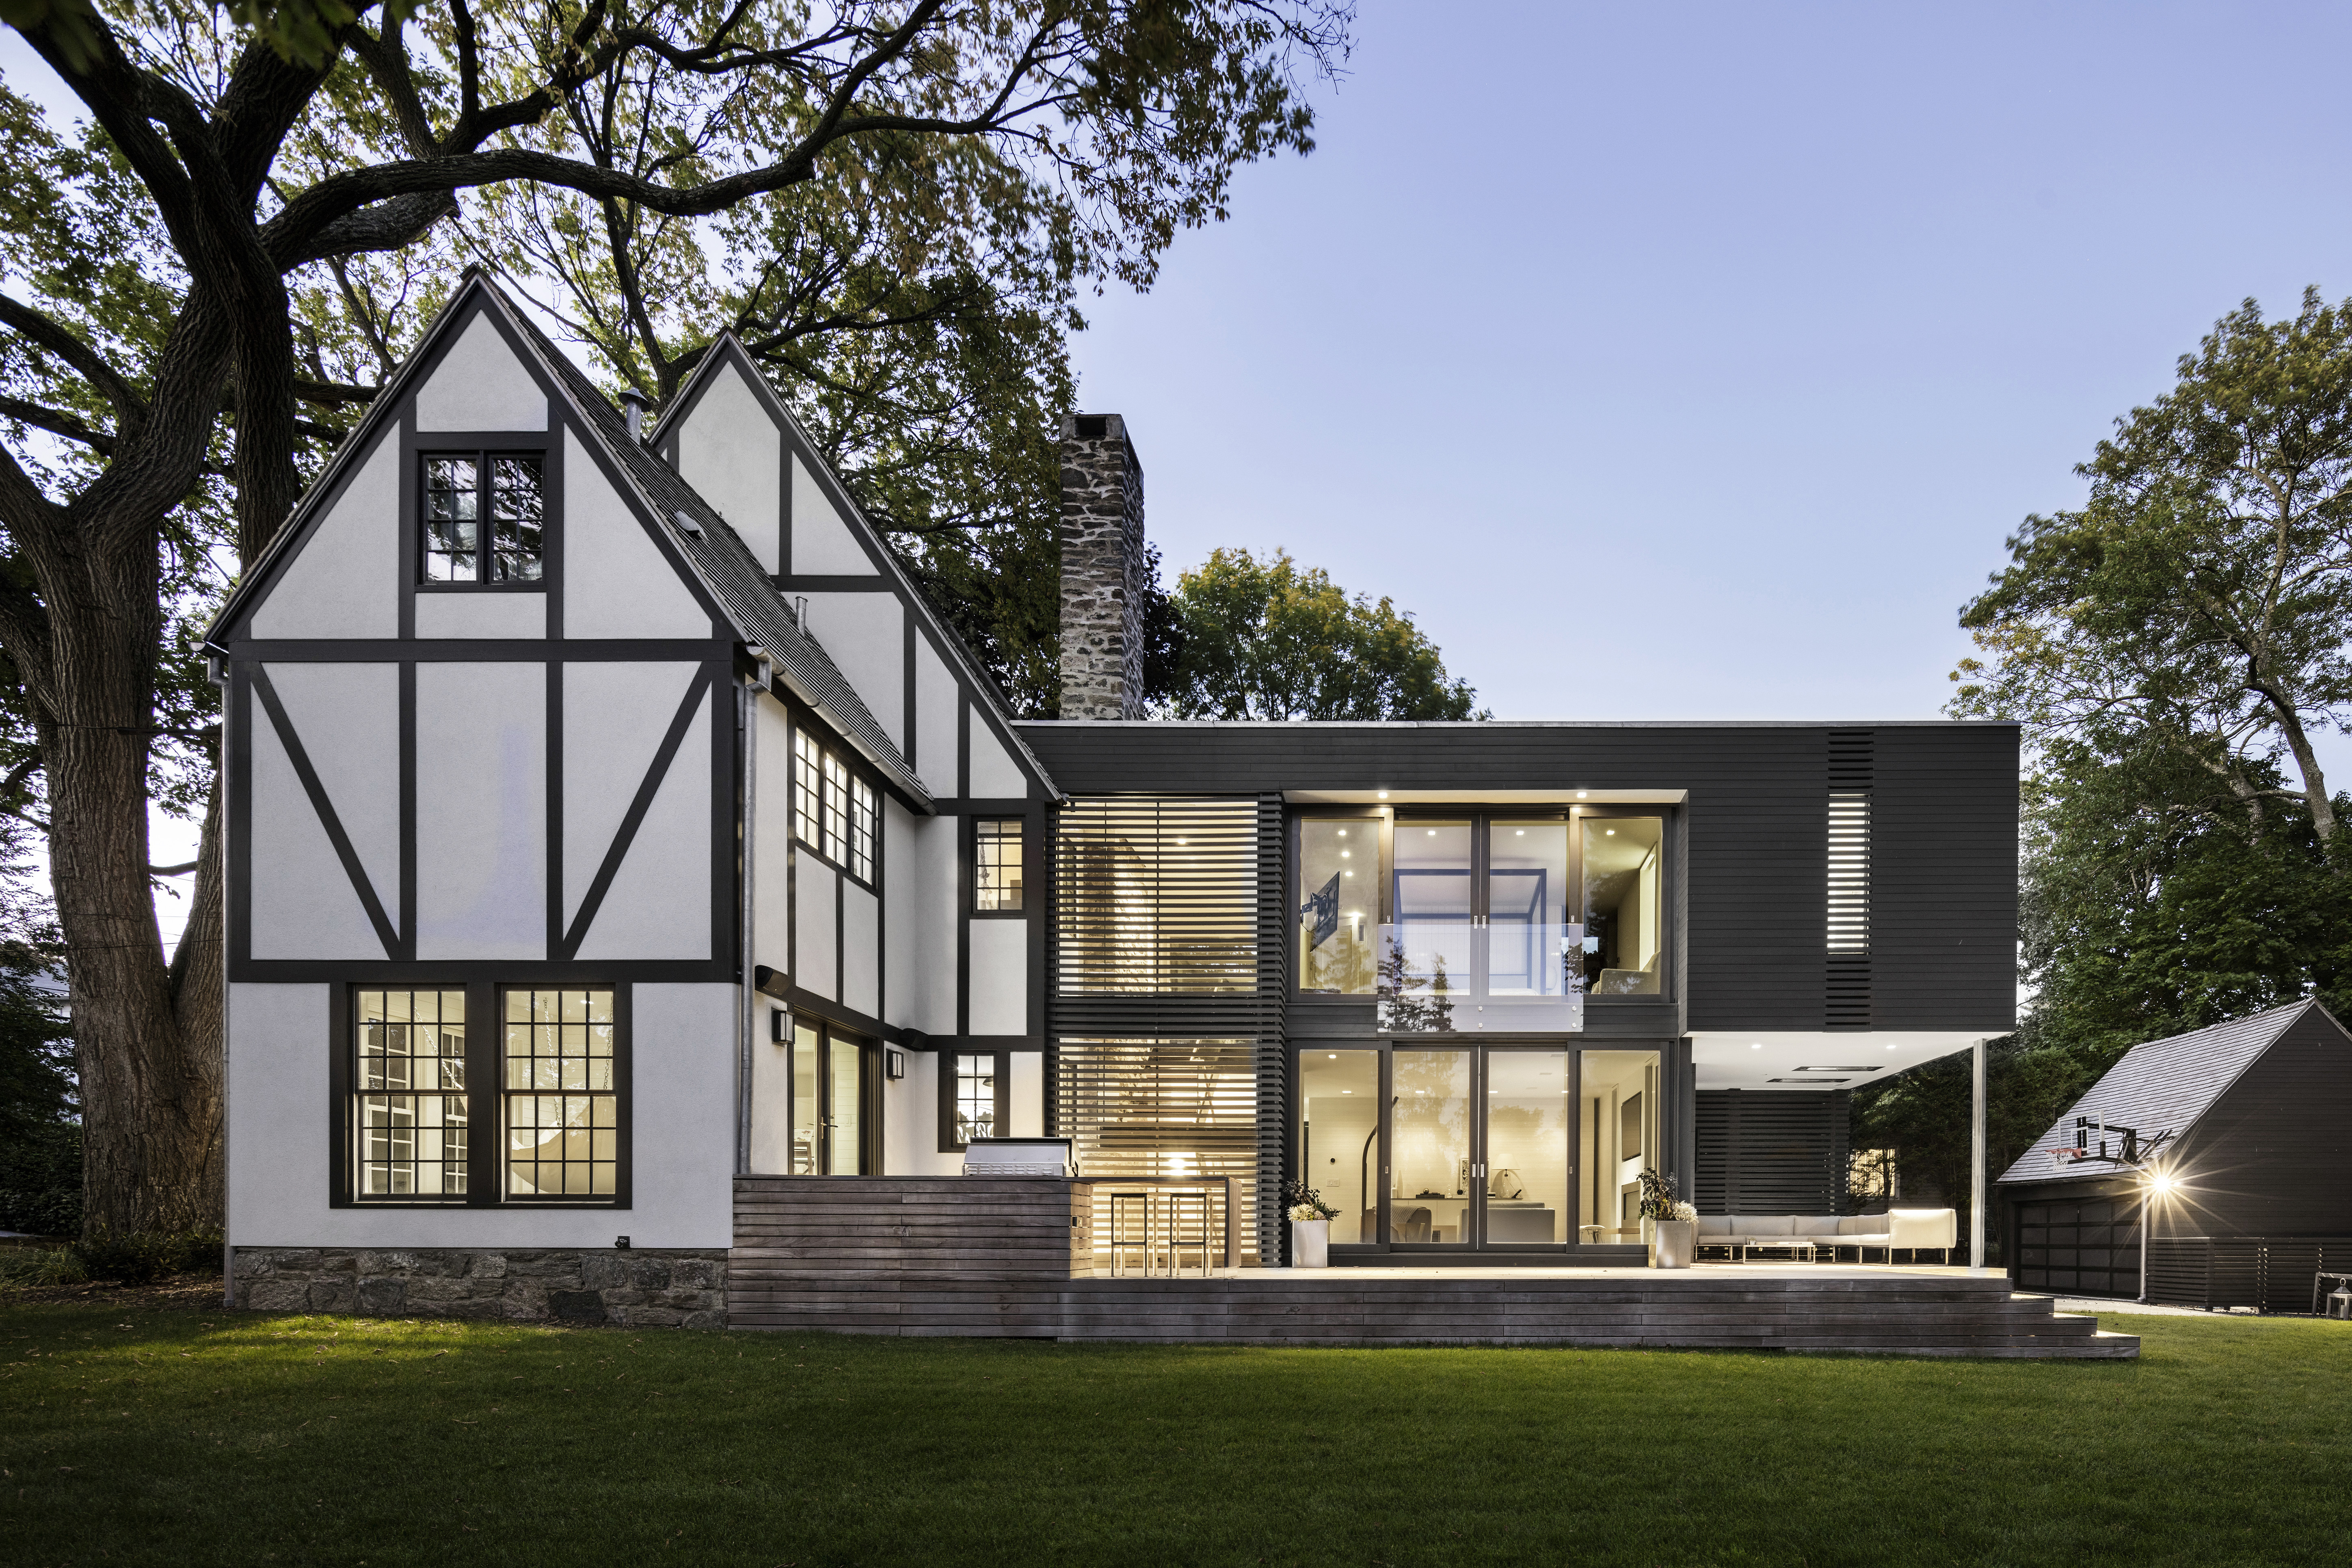 35HP: Tudor Style House with Modern Addition by Joeb Moore & Partners